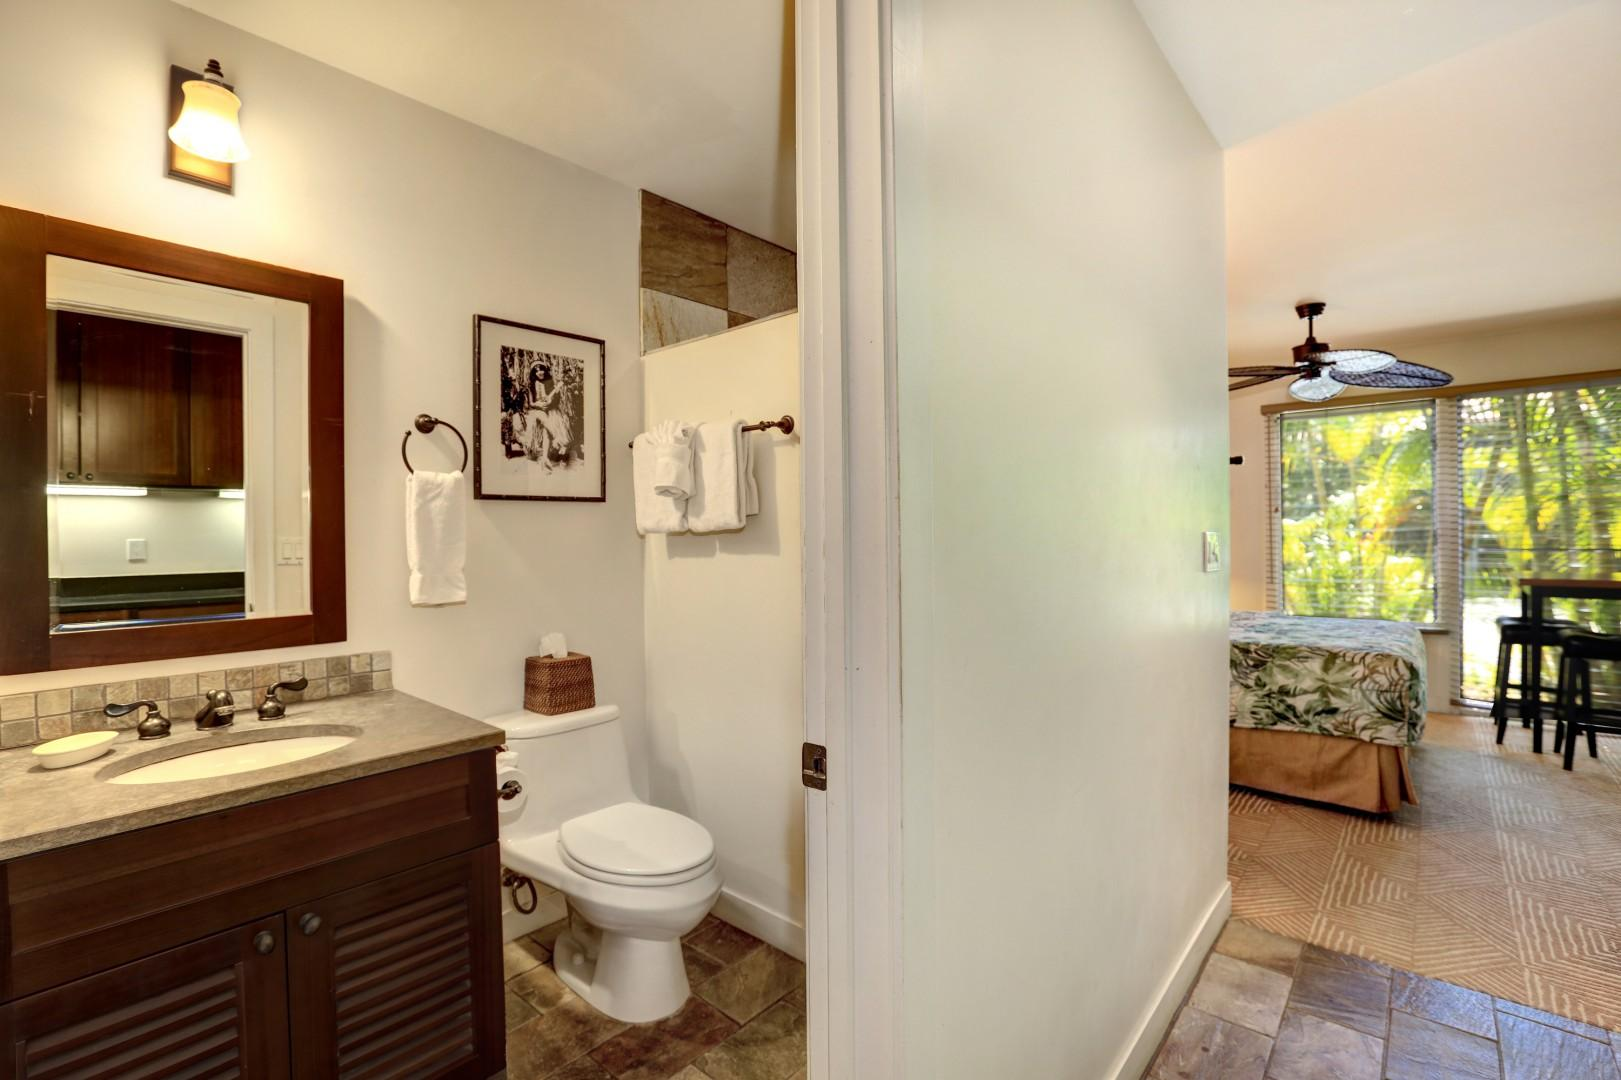 A view into the full bathroom.